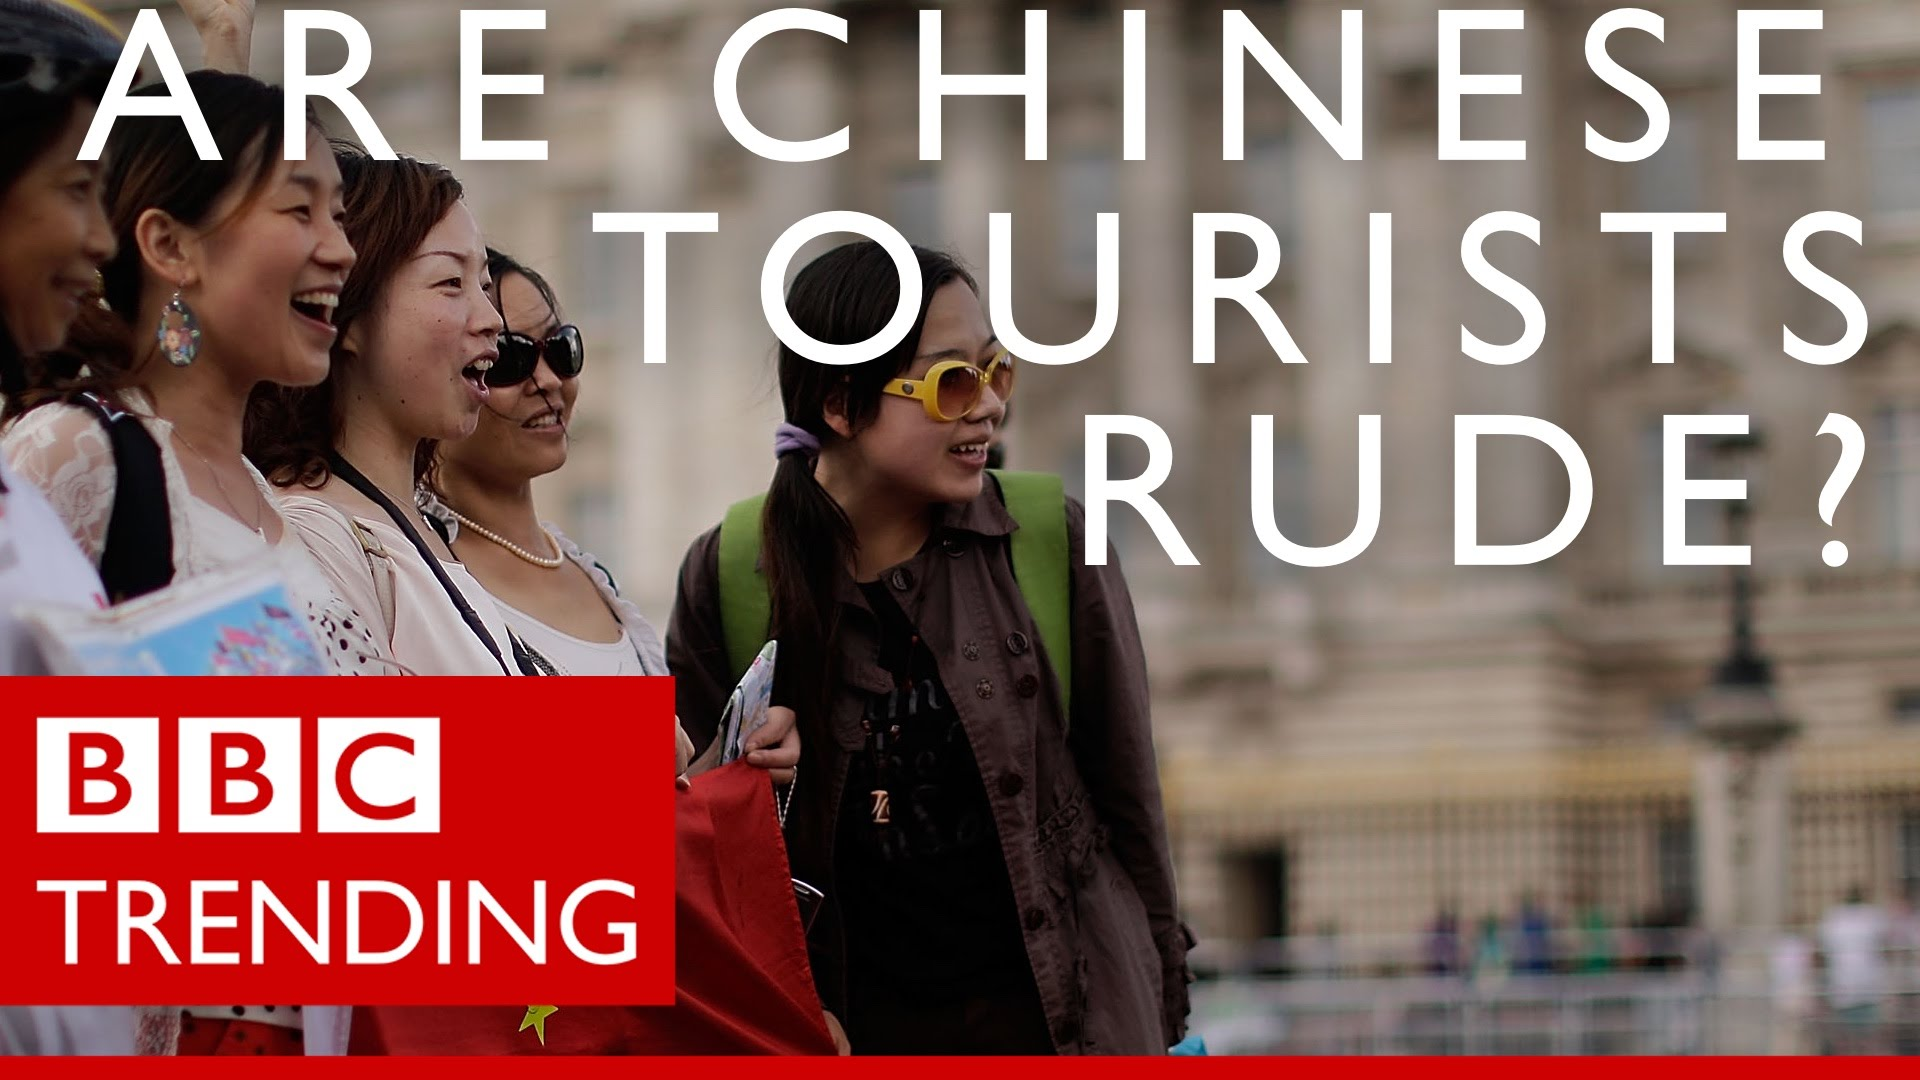 [Tourists] 10 Of The World's Worst Behaved Tourists